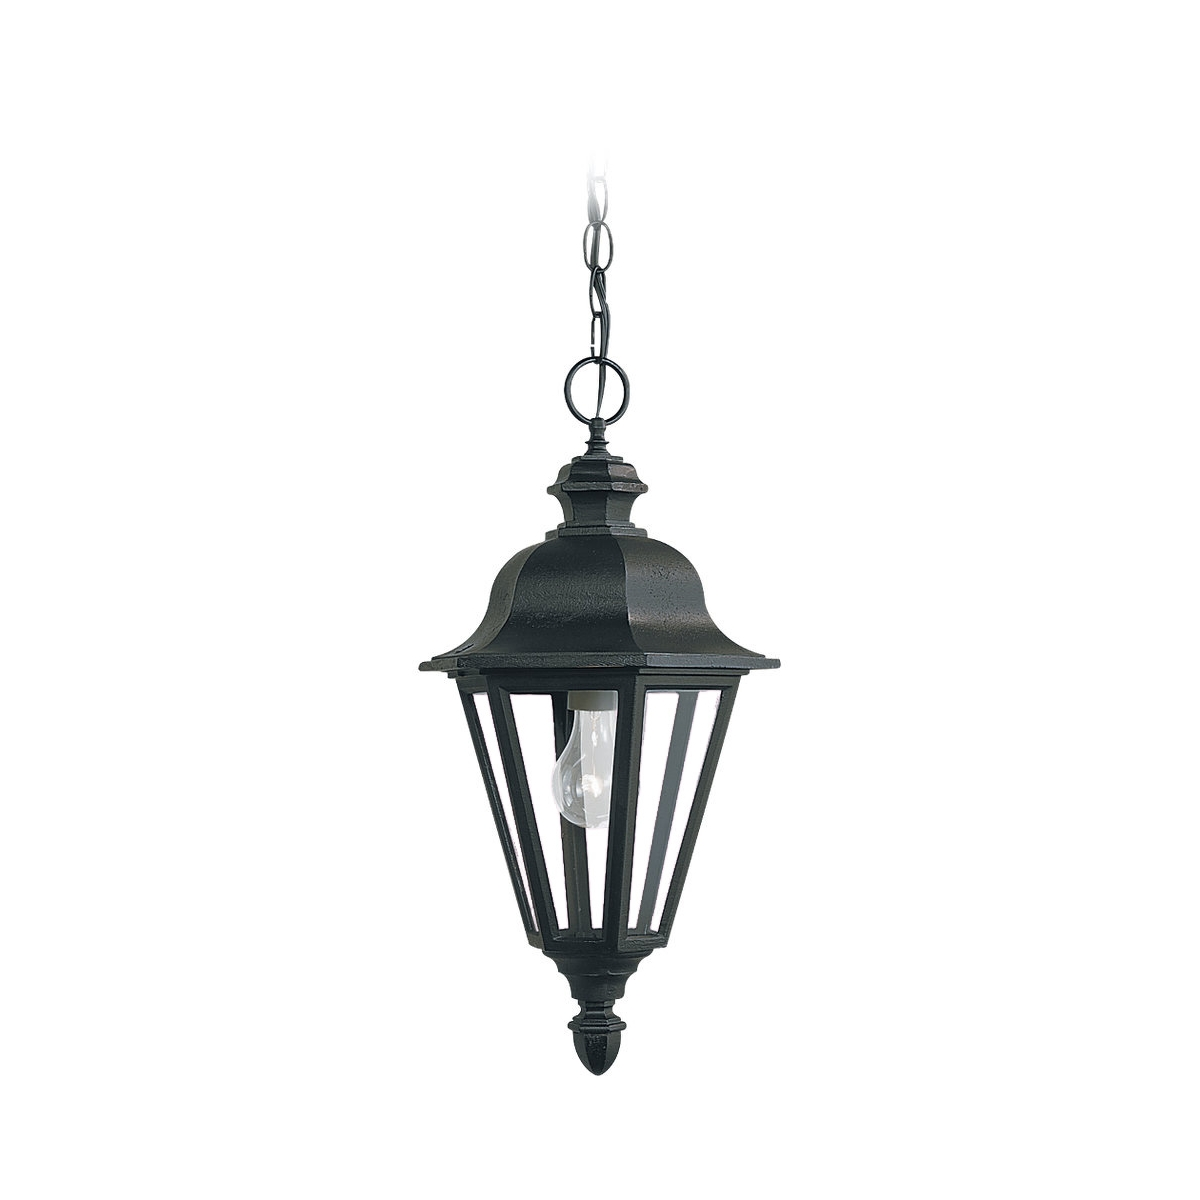 Sea Gull Lighting Brentwood 1 Light Outdoor Pendant in Black 6025-12 photo